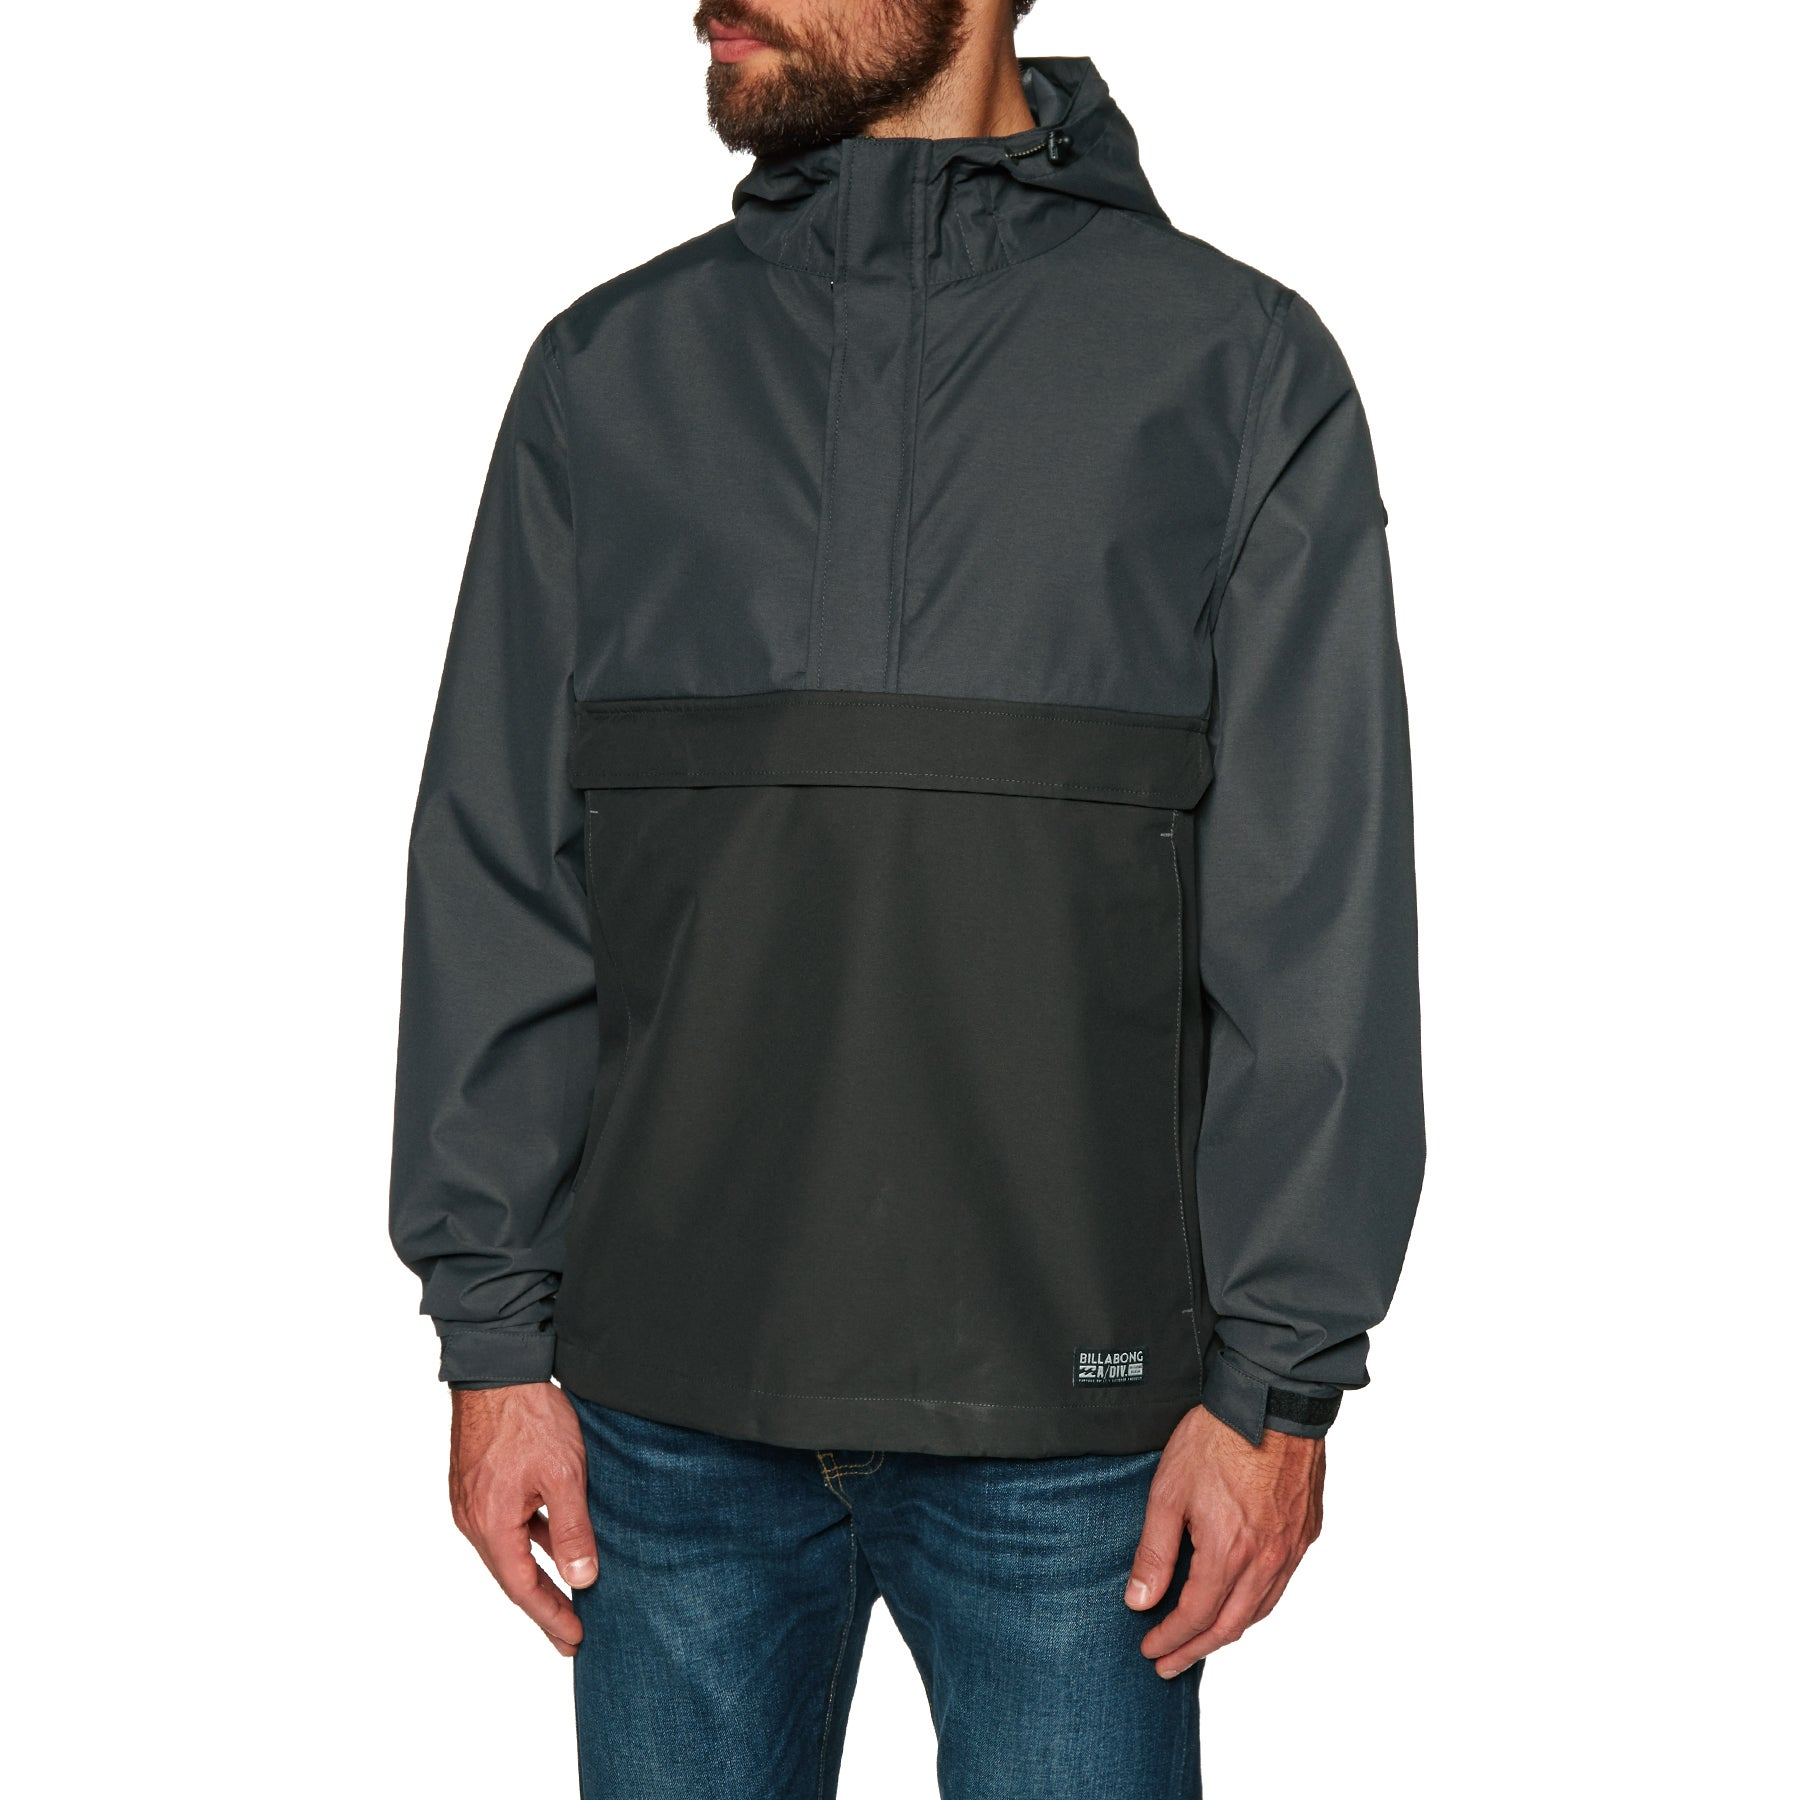 Billabong Boundary Shell Jacket